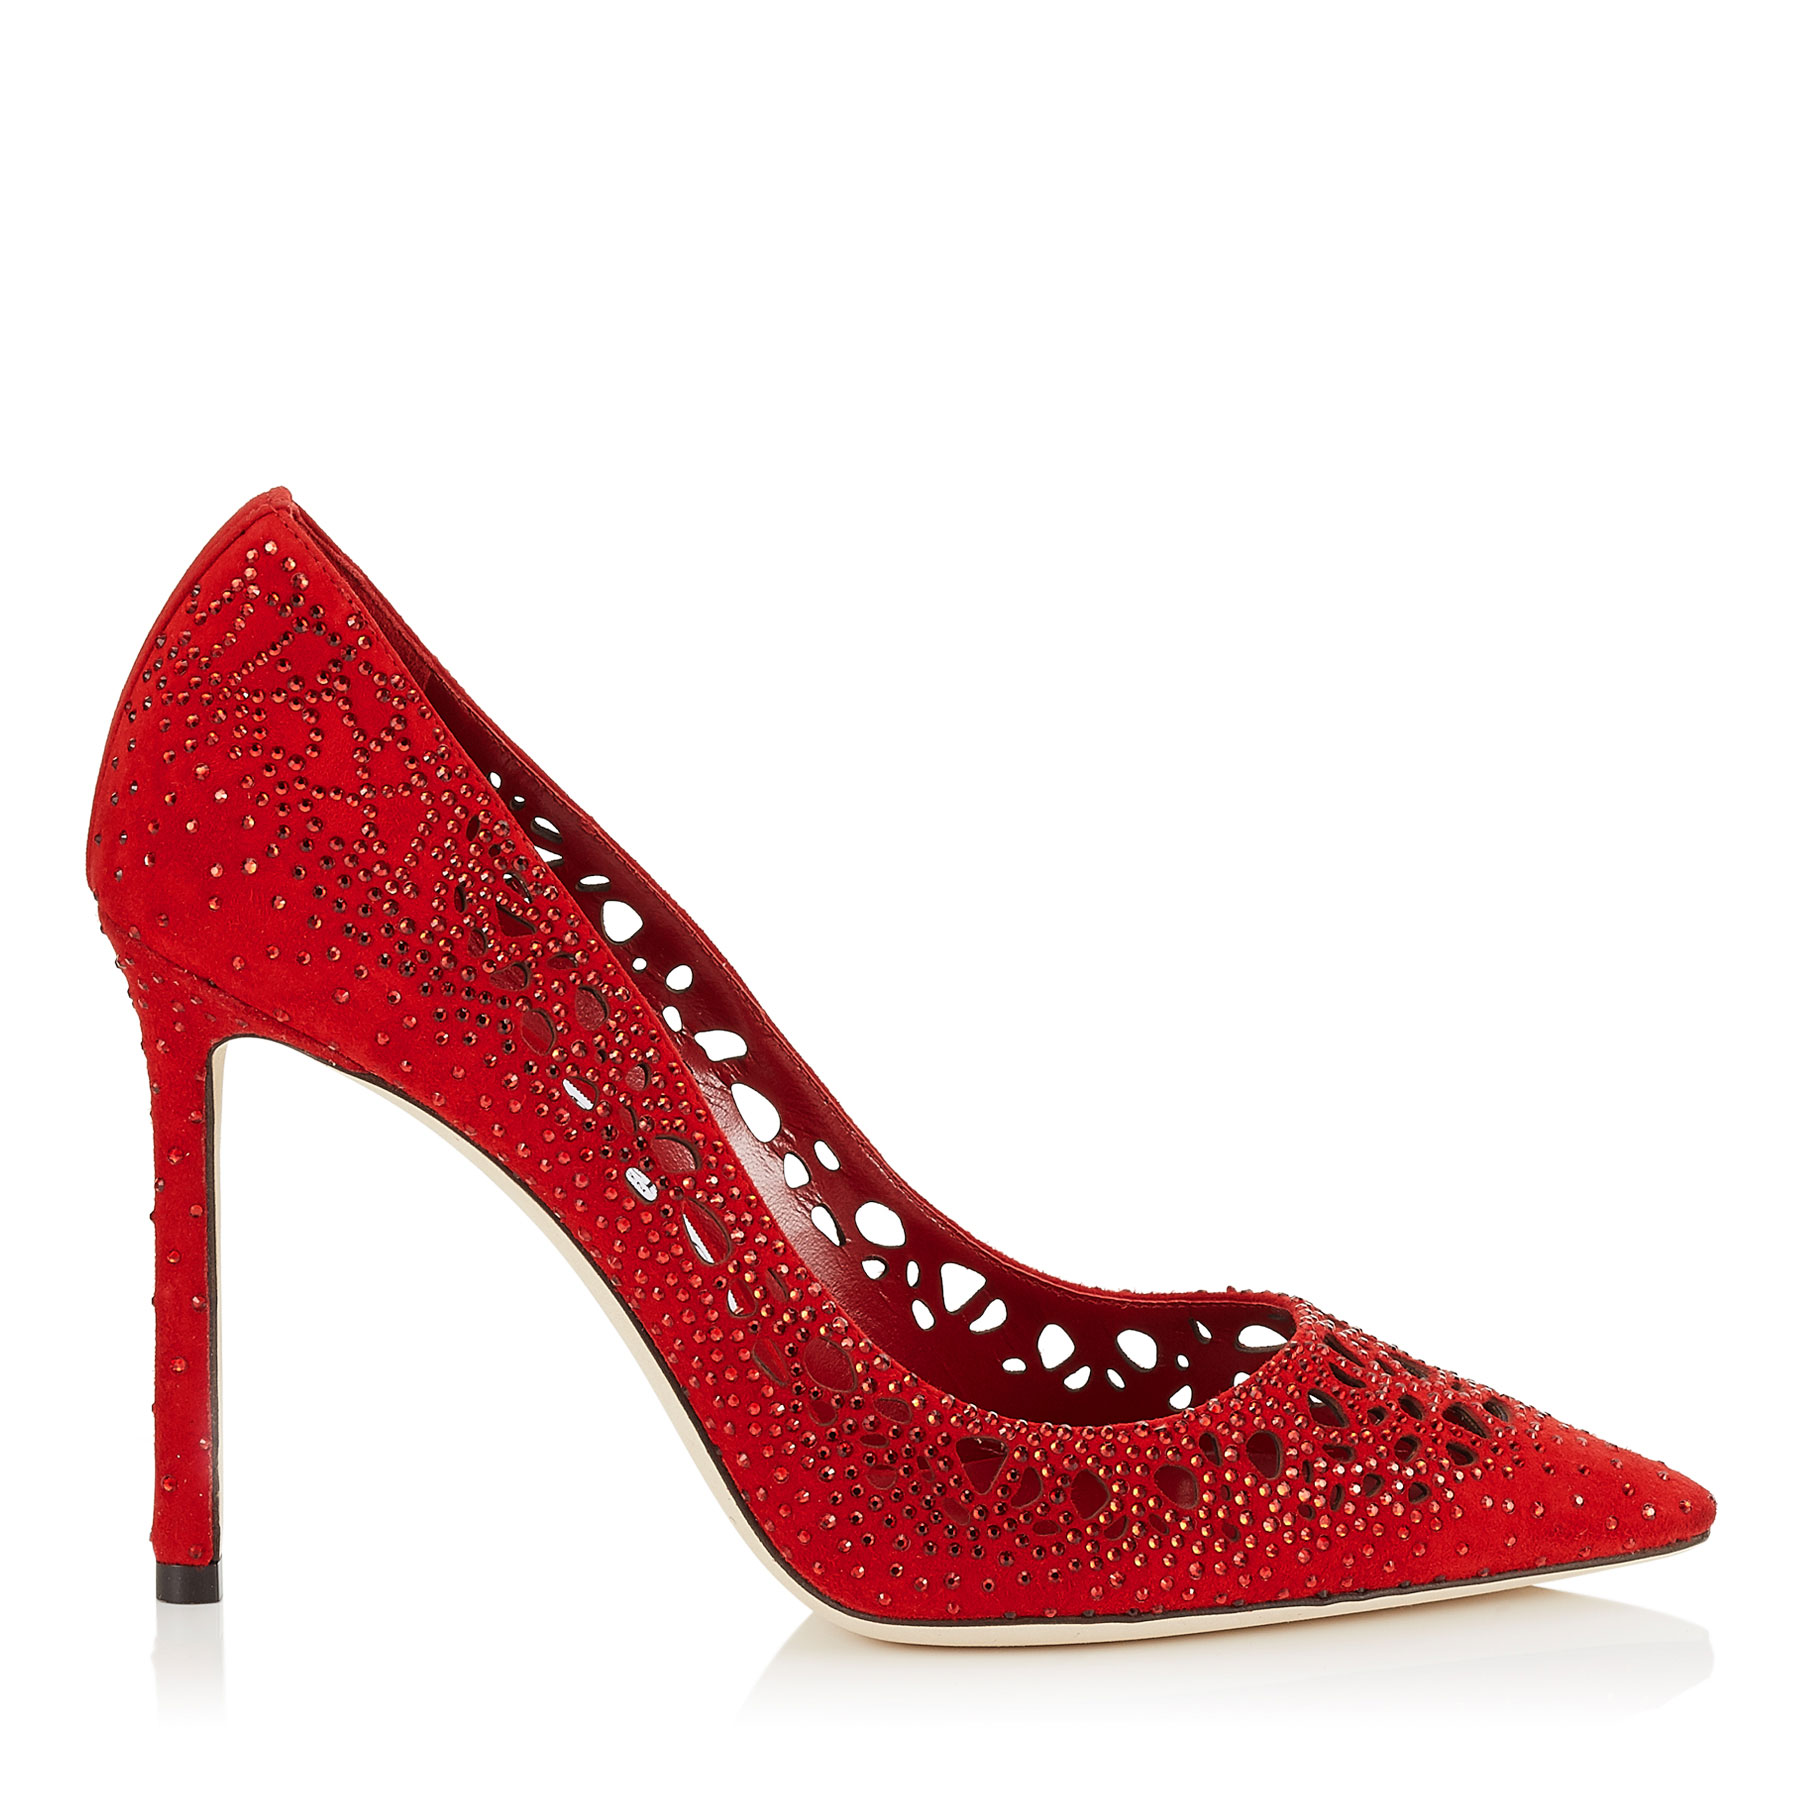 ROMY 110 Red Perforated Suede with Crystal Hotfix Detailing Pointy Toe Pumps